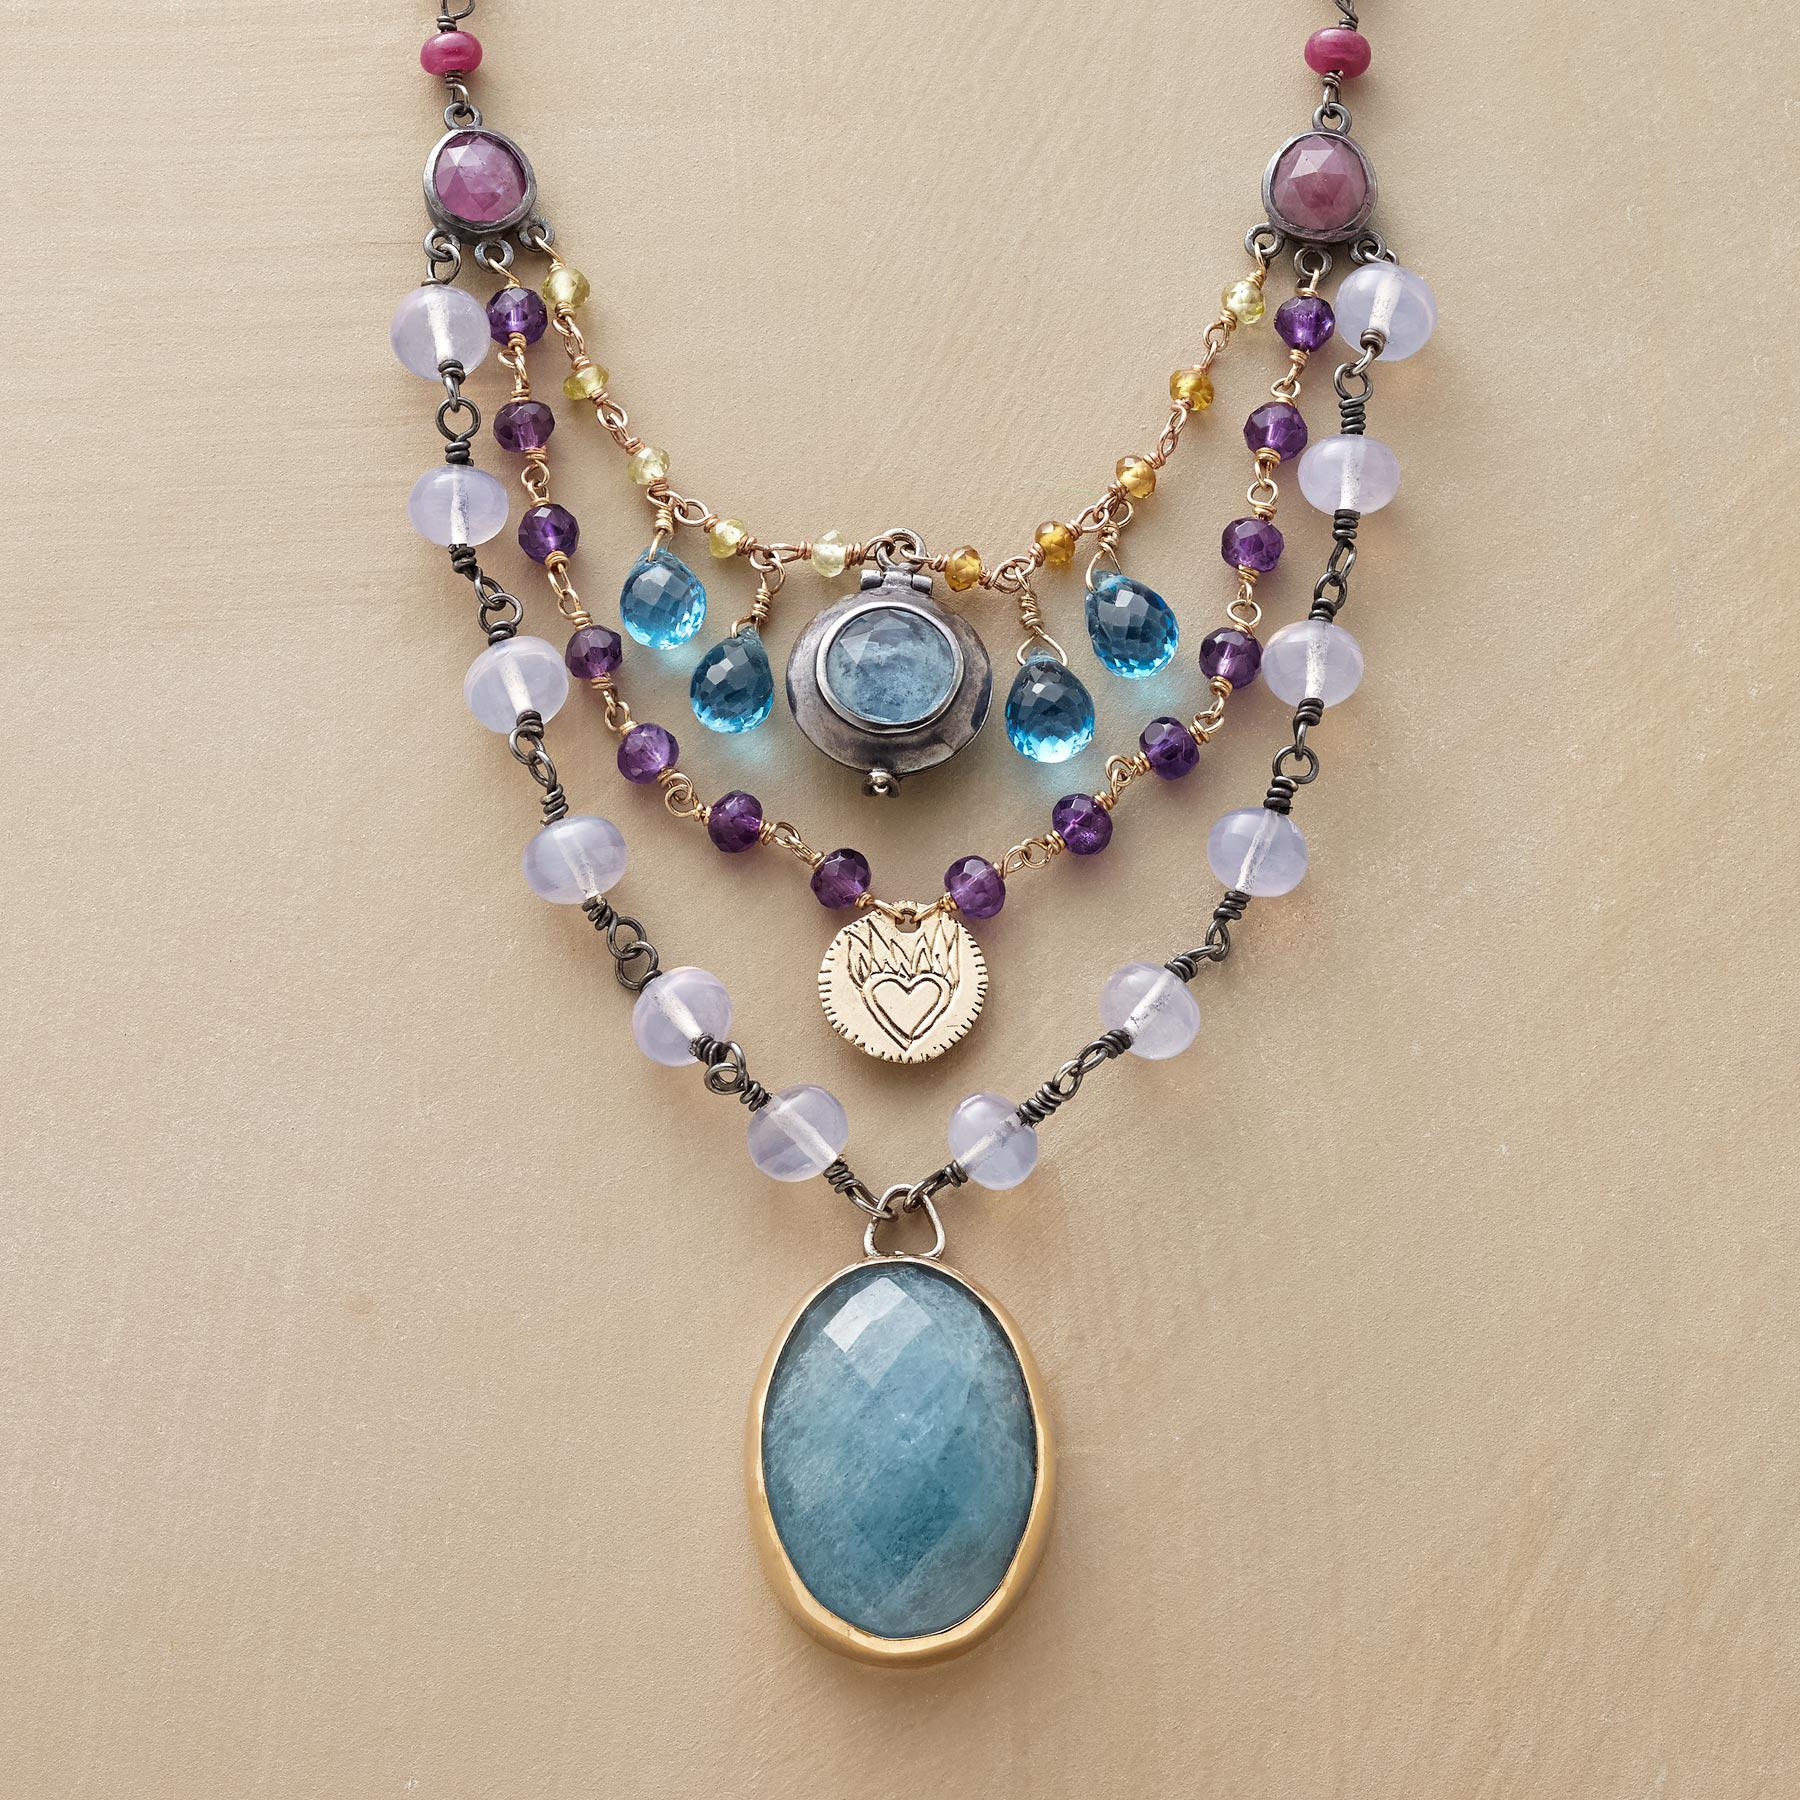 Poseidon's Treasures Necklace